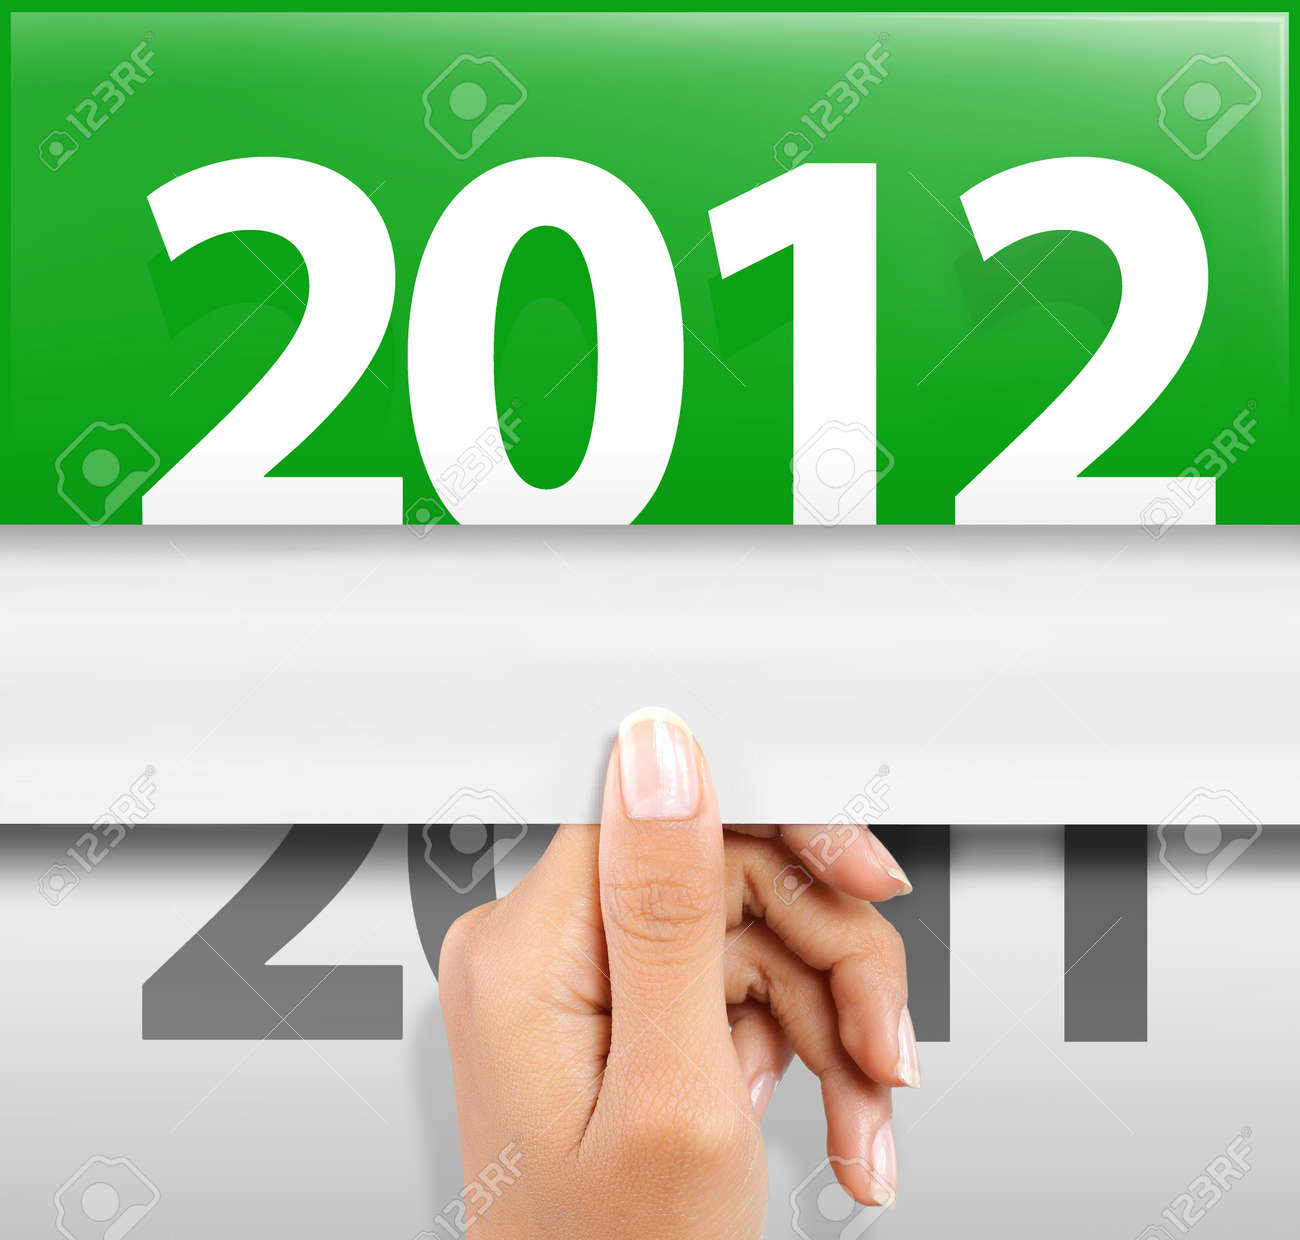 symbol of happy new year 2012 Stock Photo - 10693131